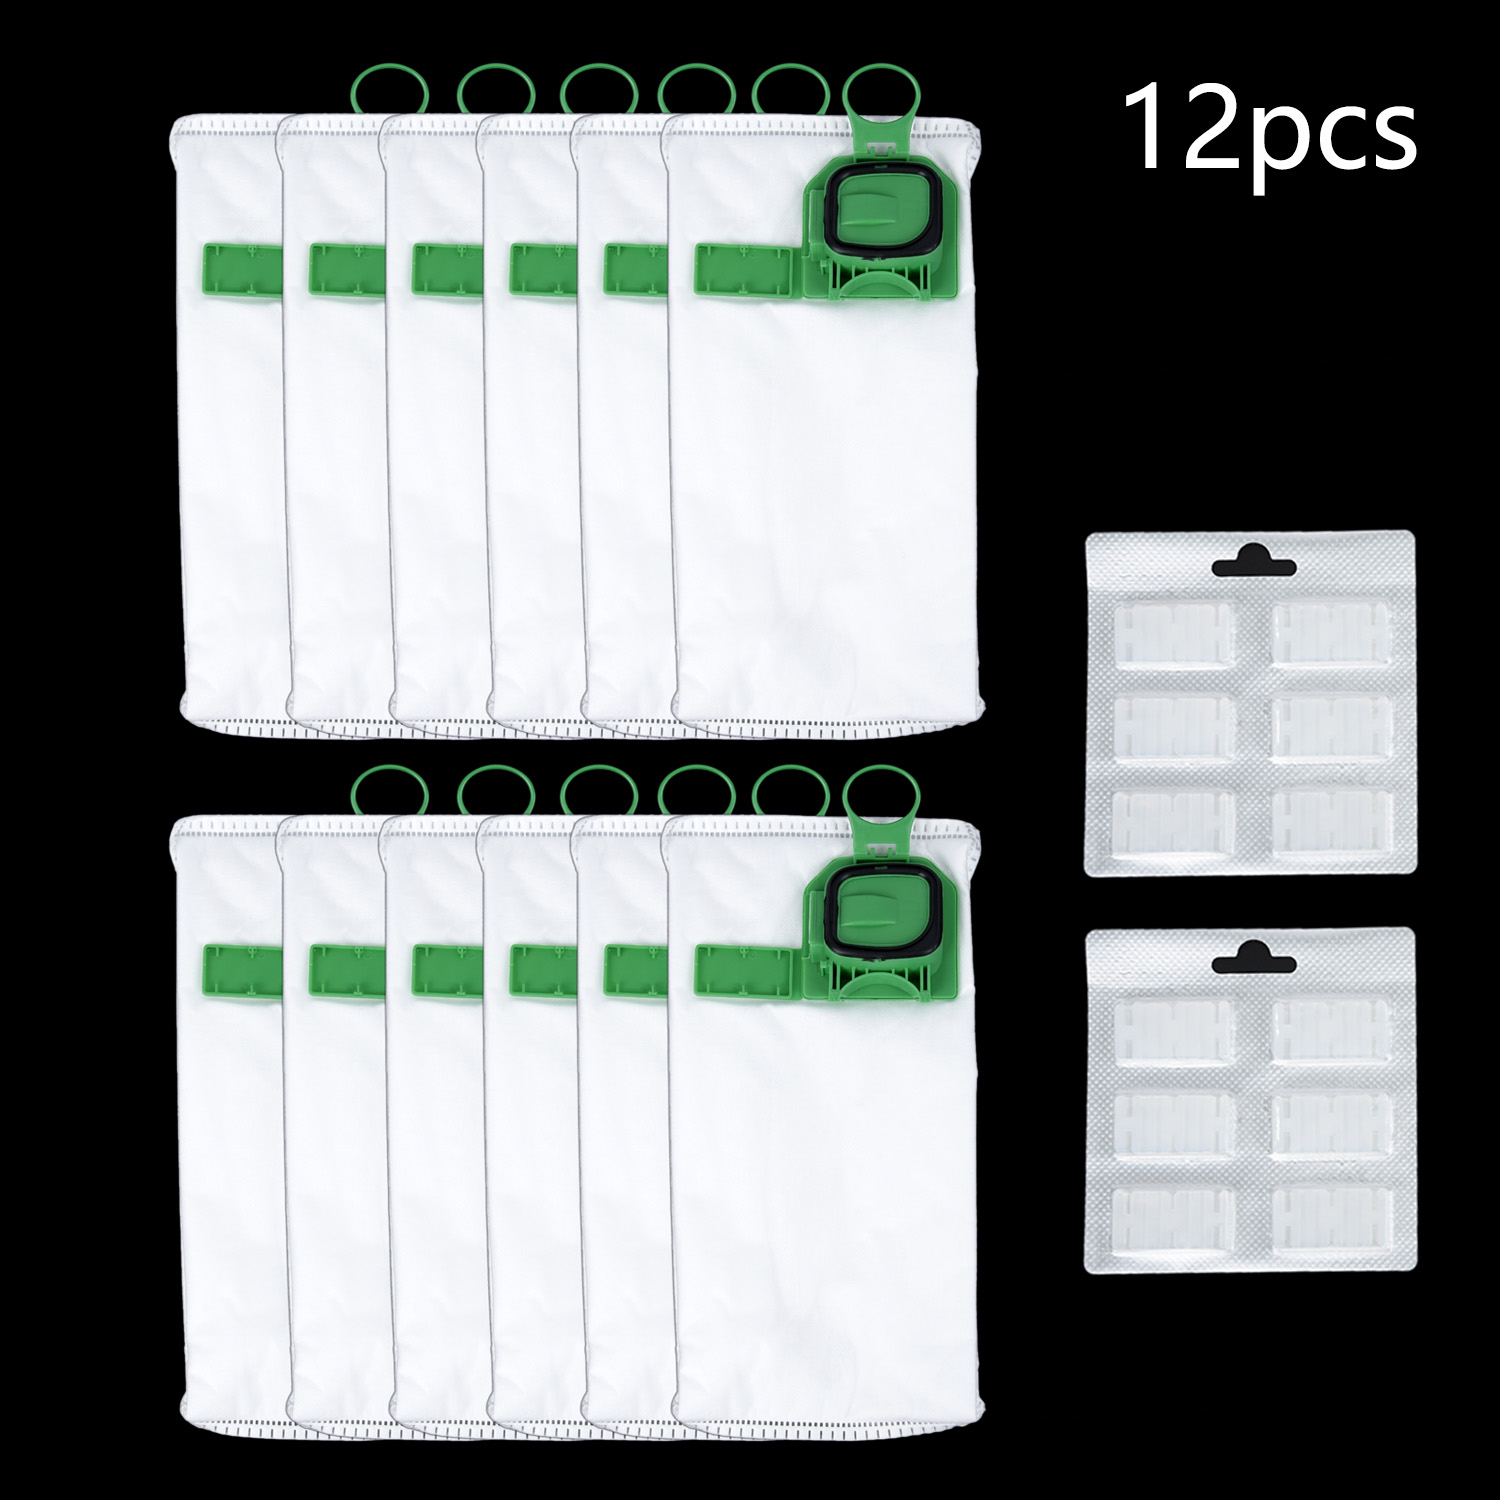 12pcs Vacuum Cleaner Bags Dust Bag For Vorwerk VK140 VK150 +Fragrance Sticks  Kit Accessories Durable And Practical To Use